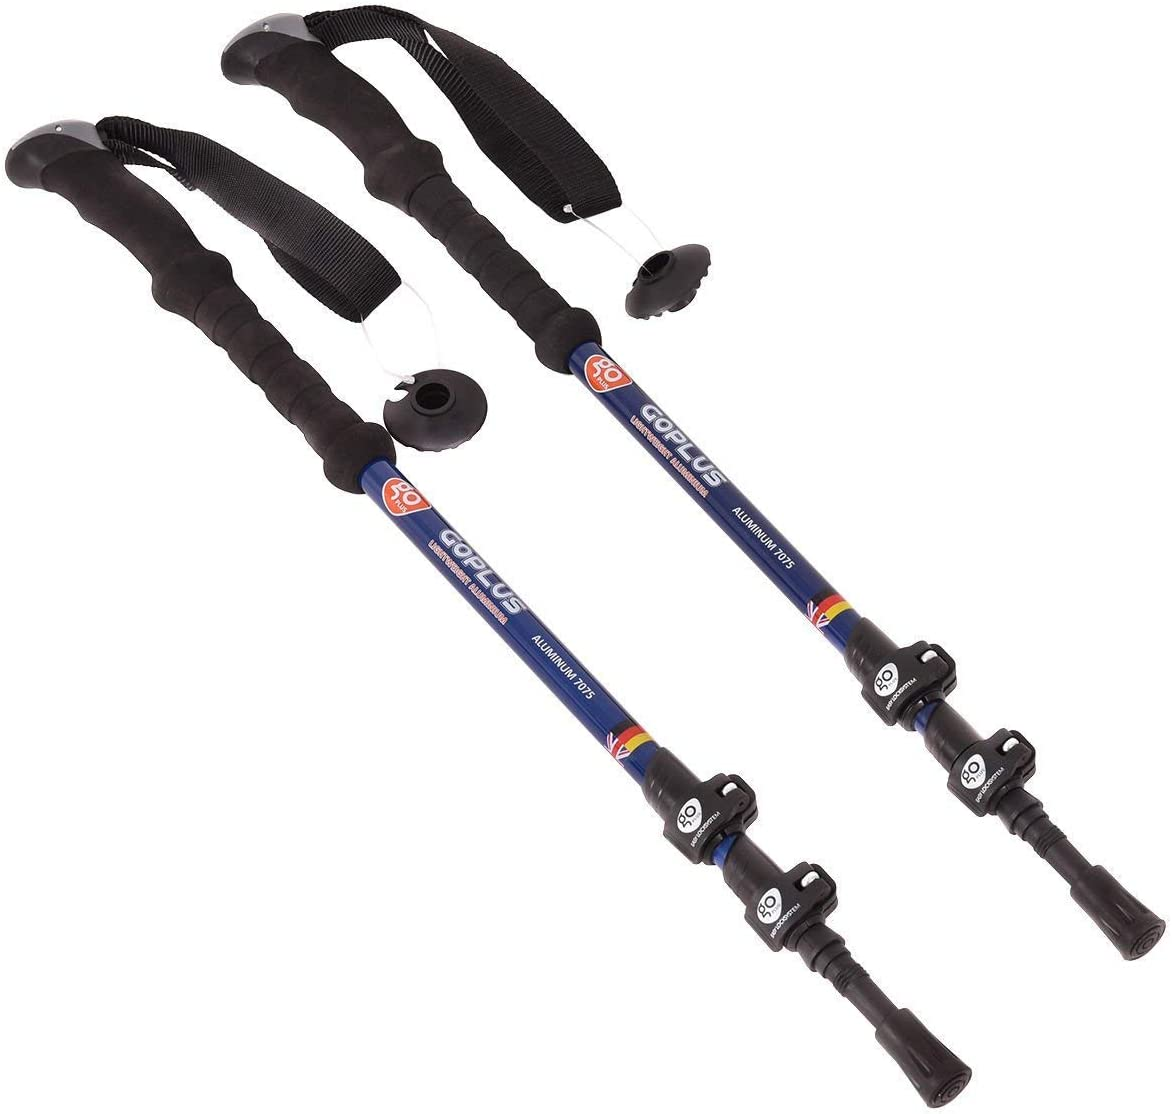 Goplus 1 Pair Trekking Poles Walking Hiking Climbing Sticks Adjustable Anti-Shock Alpenstock 2 Pack